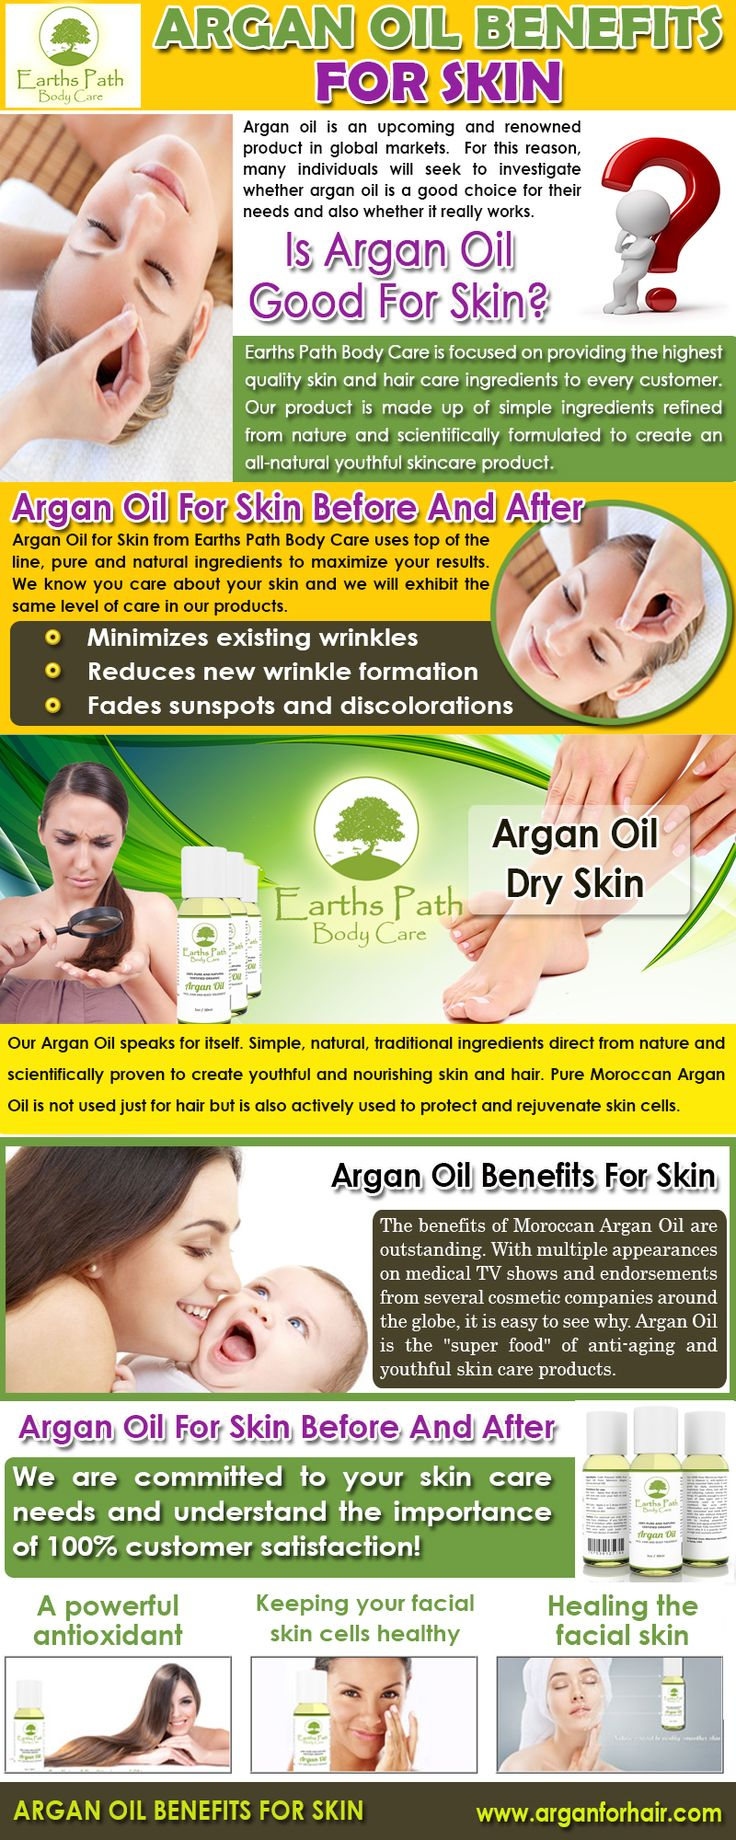 If you don't know the benefits of 100% Argan oil yet, you are missing out on one of the best ways to mask aging on your face and body. Check this link right here http://www.arganforhair.com/ for more information on Argan oil Benefits For Skin. The argan oil benefits for skin are numerous. People are clamoring to get their hands on this oil for its wondrous effect on skin.Follow us : http://whatarethebenefitsofarganoilforface.blogspot.com/